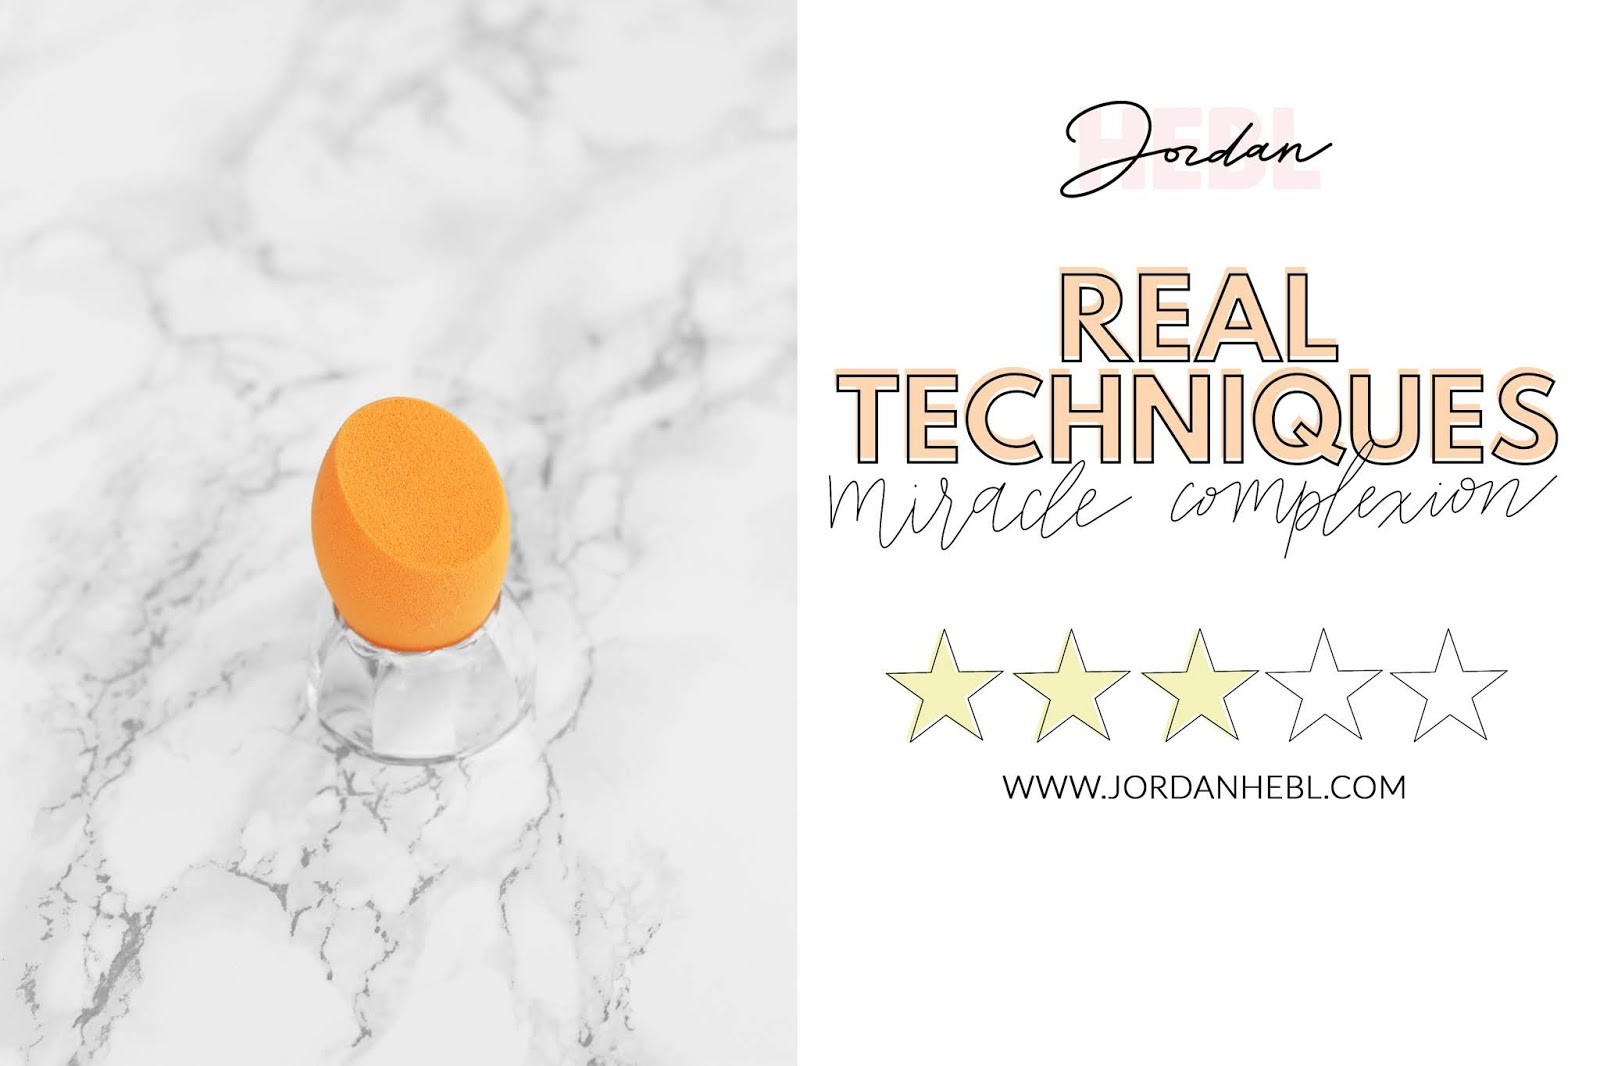 real techniques miracle complexion sponge, comparing makeup sponges, orange real techniques makeup sponge with marble background, beauty comparisons, beauty blogger